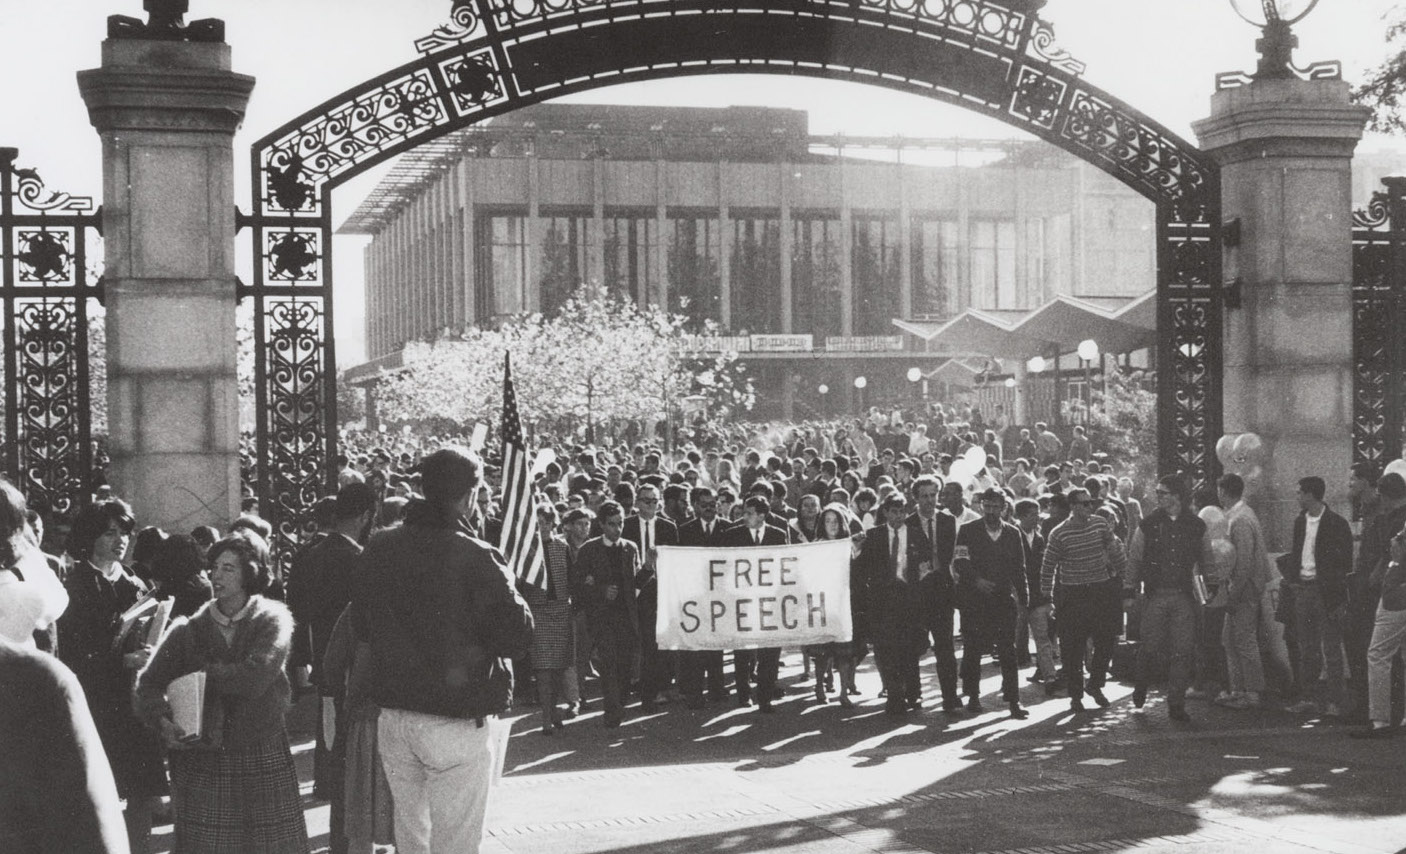 UCB Free Speech Movement protesters at Sather Gate on Nov. 20, 1964. (Credit: UCB Library)